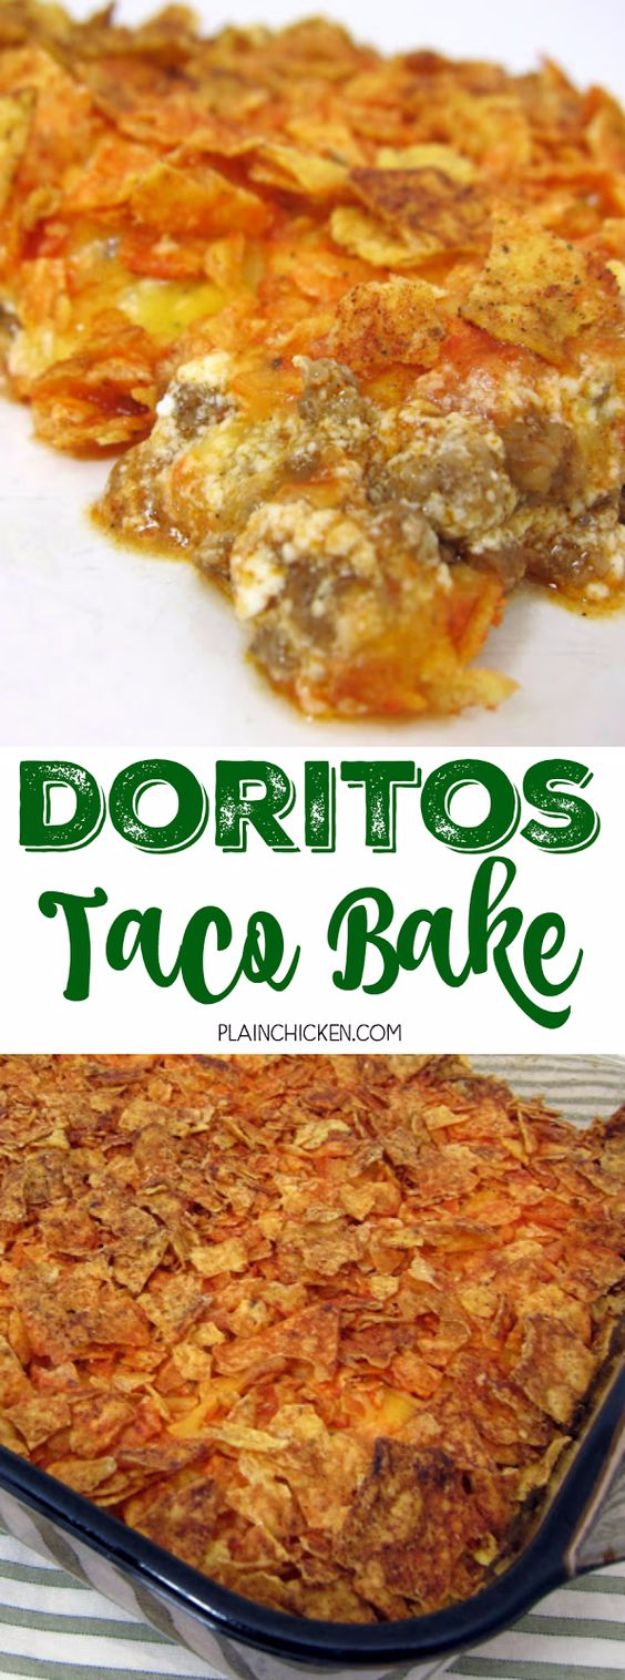 DIY Recipes Made With Doritos - Doritos Taco Bake - Best Dorito Recipes for Casserole, Taco Salad, Chicken Dinners, Beef Casseroles, Nachos, Easy Cool Ranch Meals and Ideas for Dips, Snacks and Kids Recipe Tutorials - Quick Lunch Ideas and Recipes for Parties